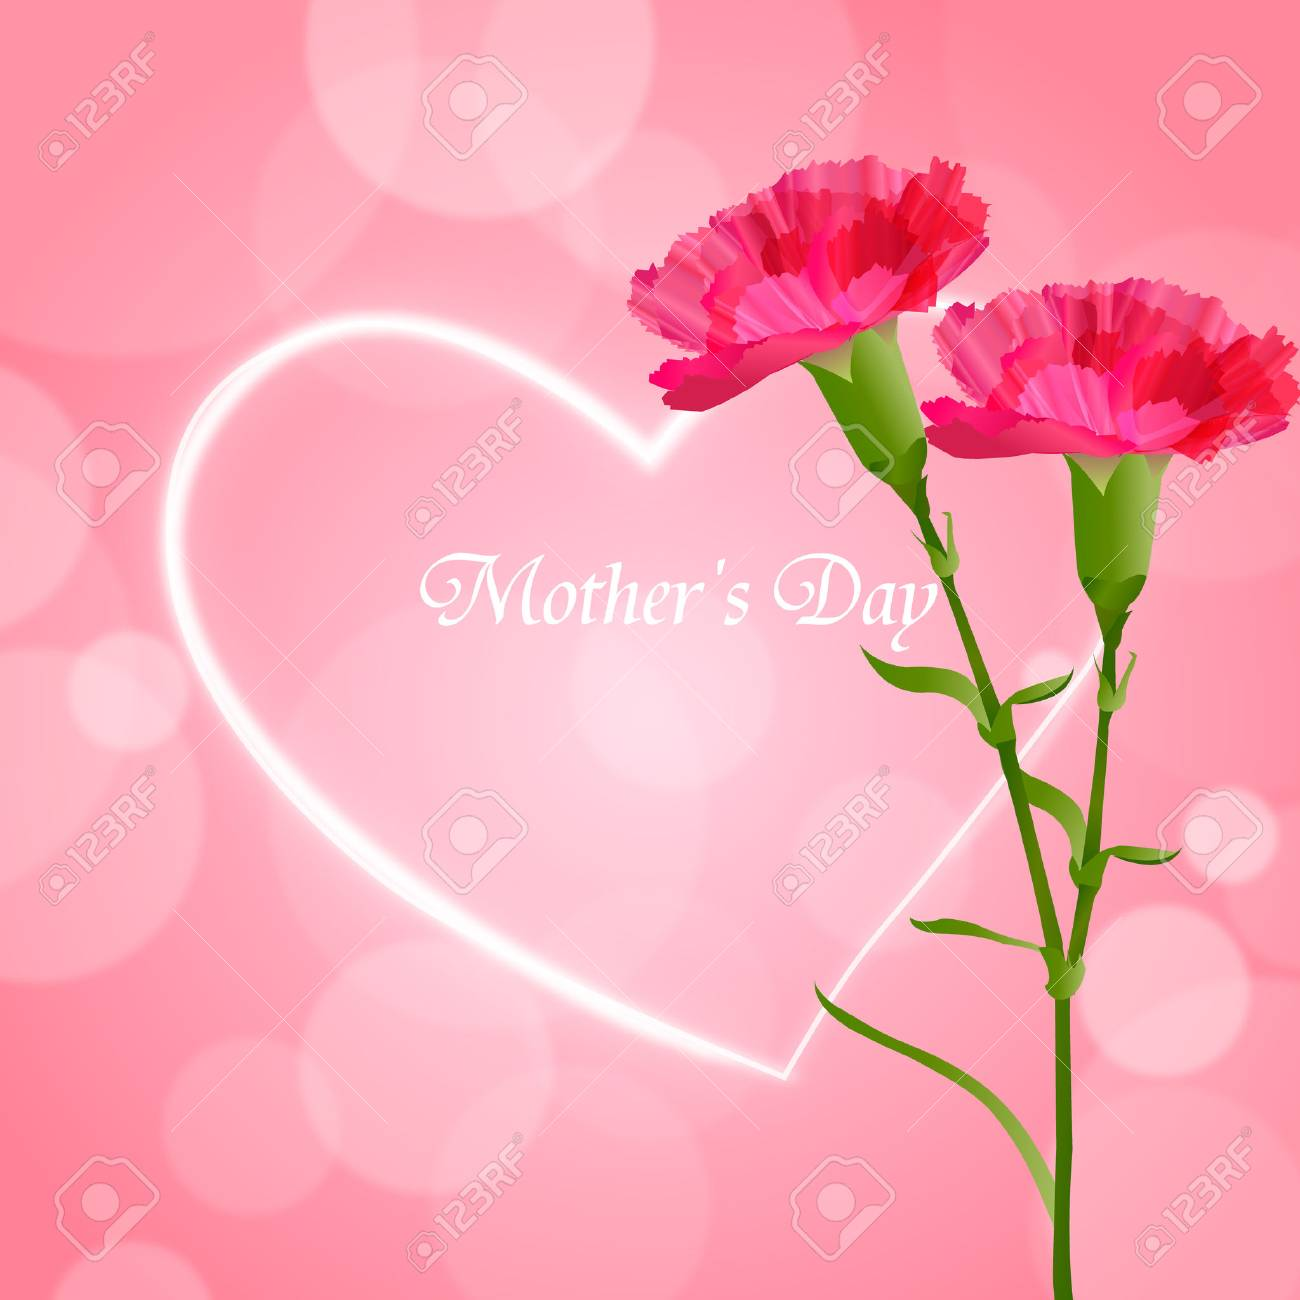 Mother's Day carnation flower background - 53716147